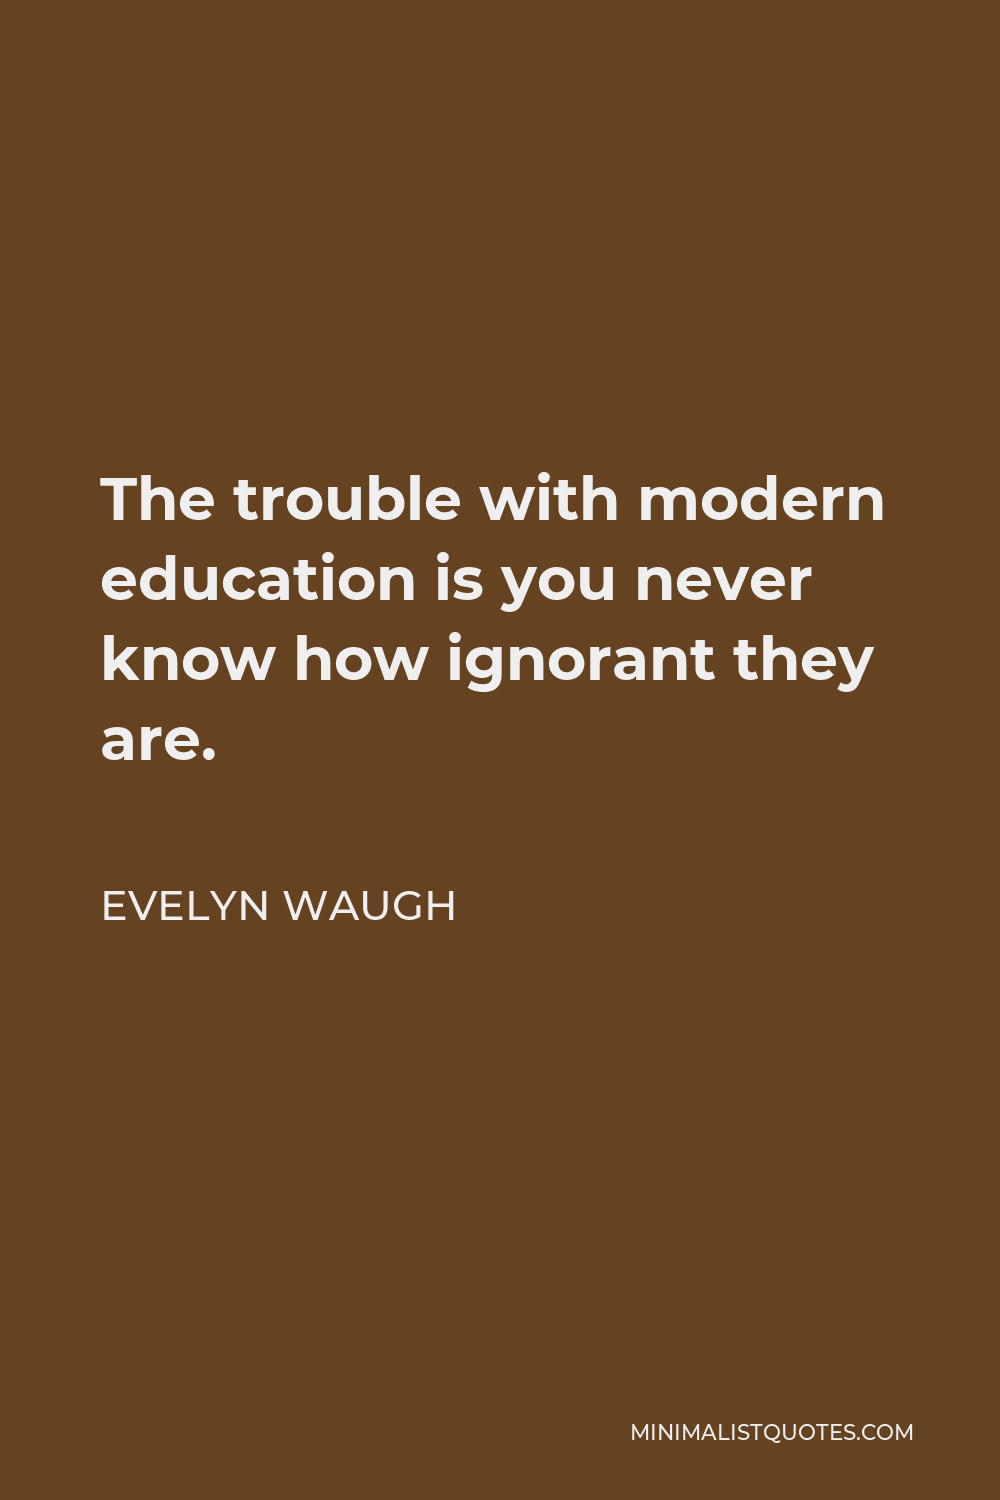 Evelyn Waugh Quote - The trouble with modern education is you never know how ignorant they are.